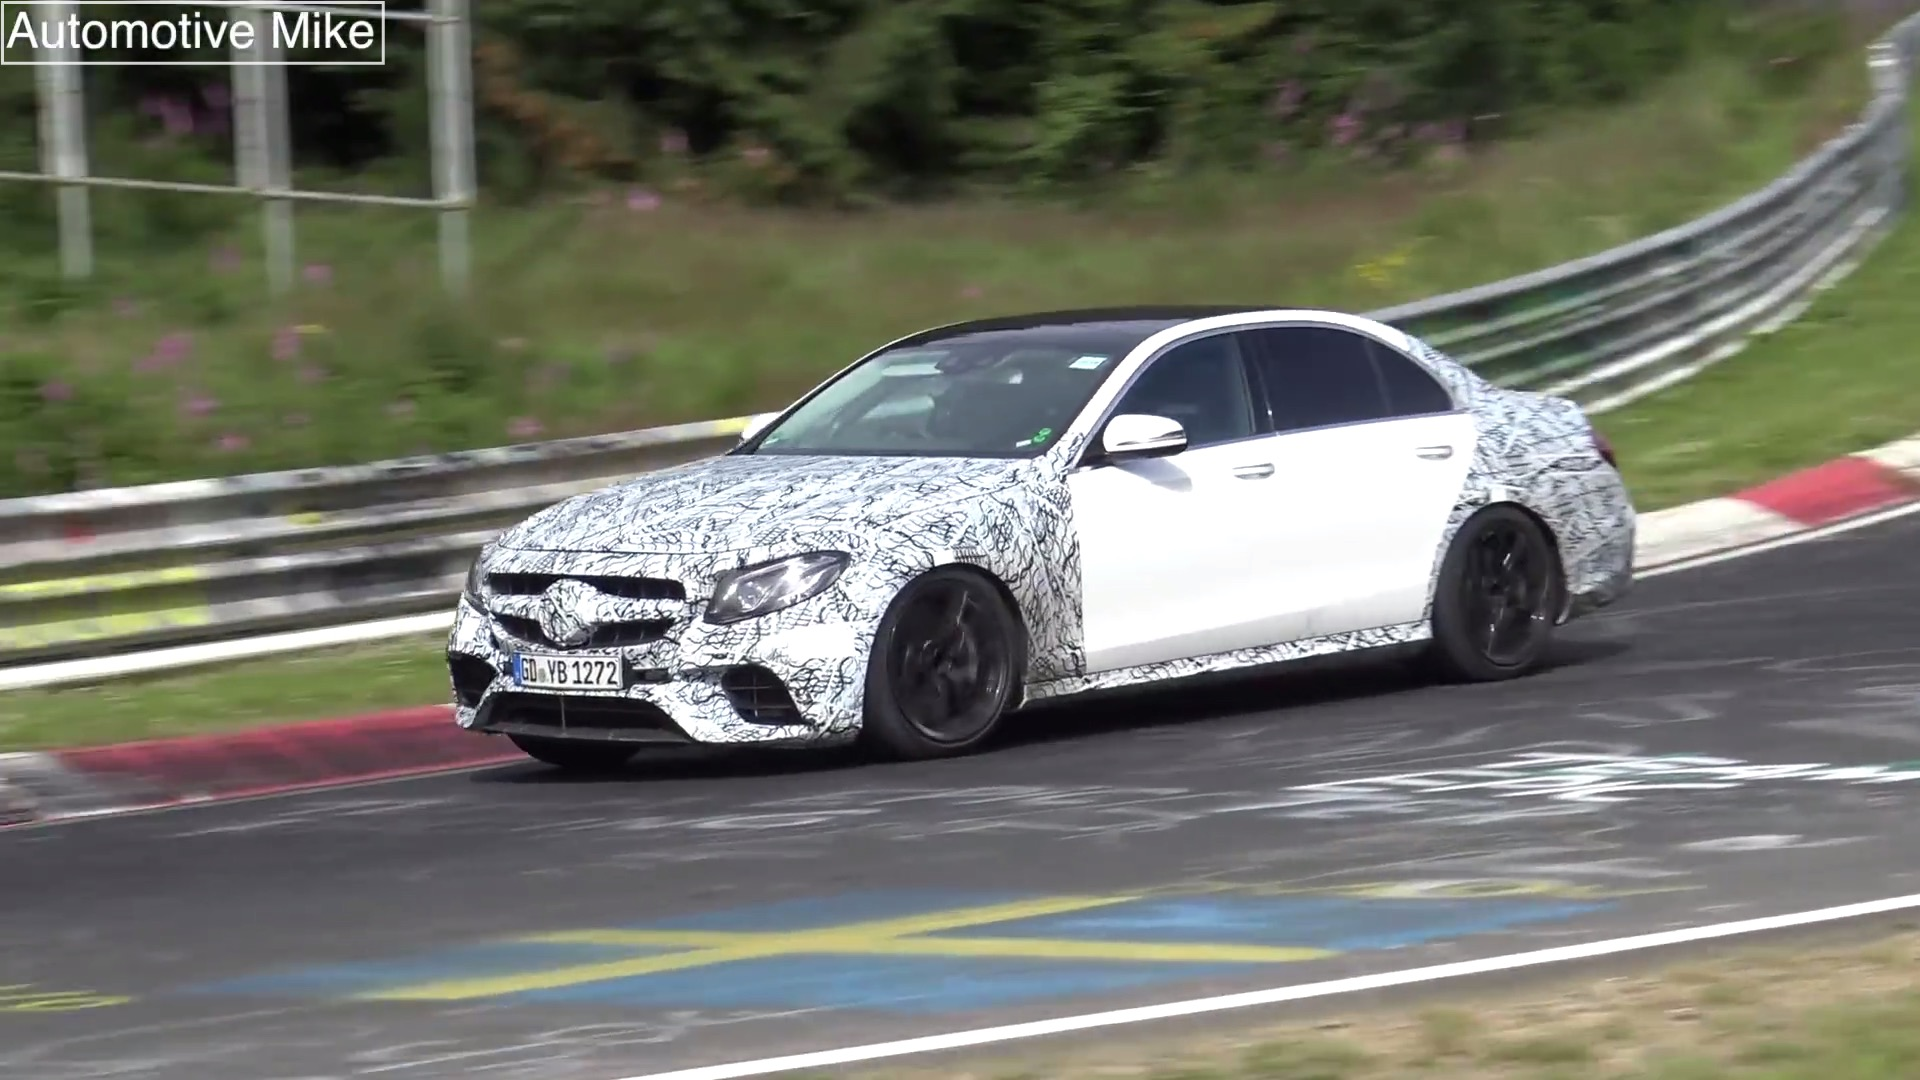 2017 Mercedes-AMG E63 (W213) Drops Hot Laps On the Nurburgring